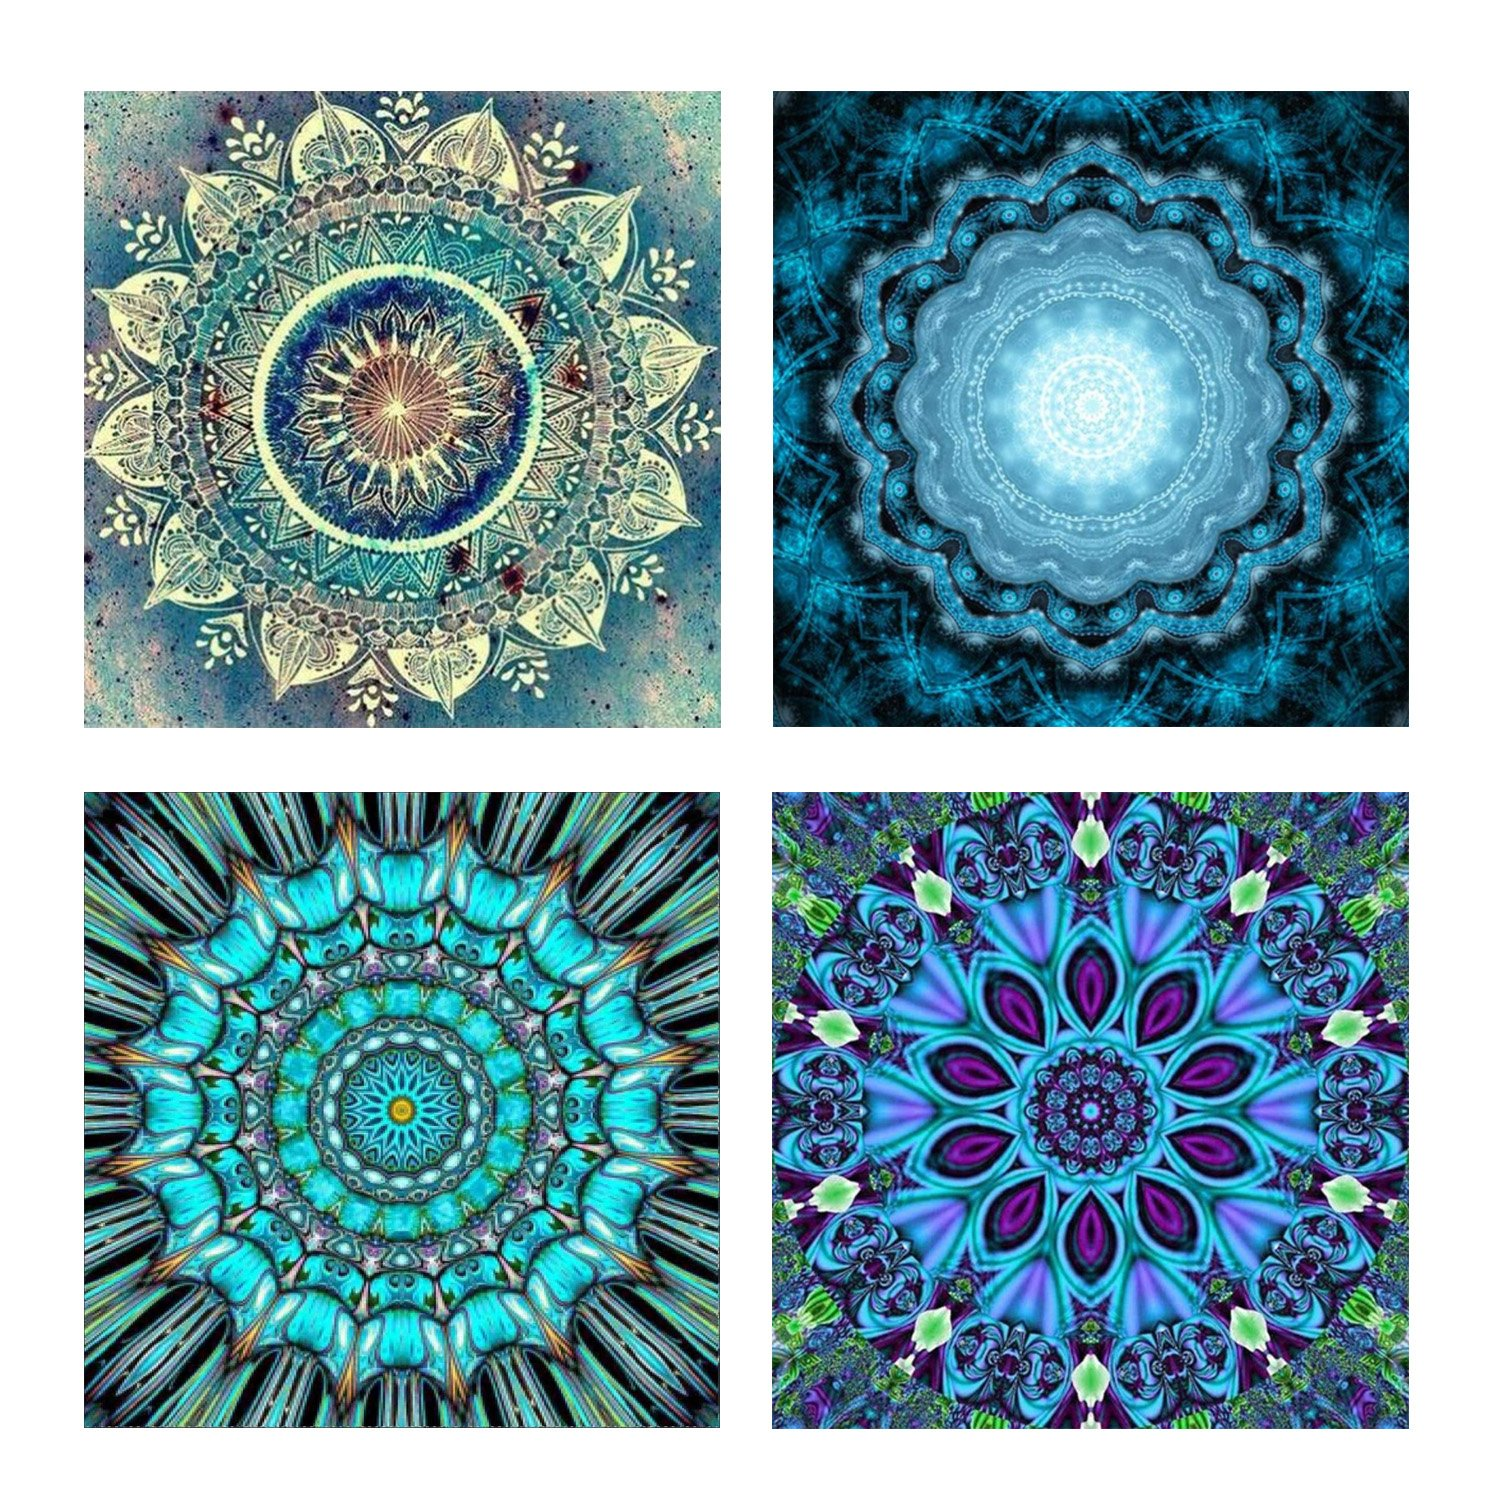 4 Pack 5D DIY Diamond Painting Set Decorating Cabinet Table Stickers Crystal Rhinestone Diamond Embroidery Paintings Pictures For Study Room,Flower Painting(25X25CM/9.8X9.8inch) BUBBLE